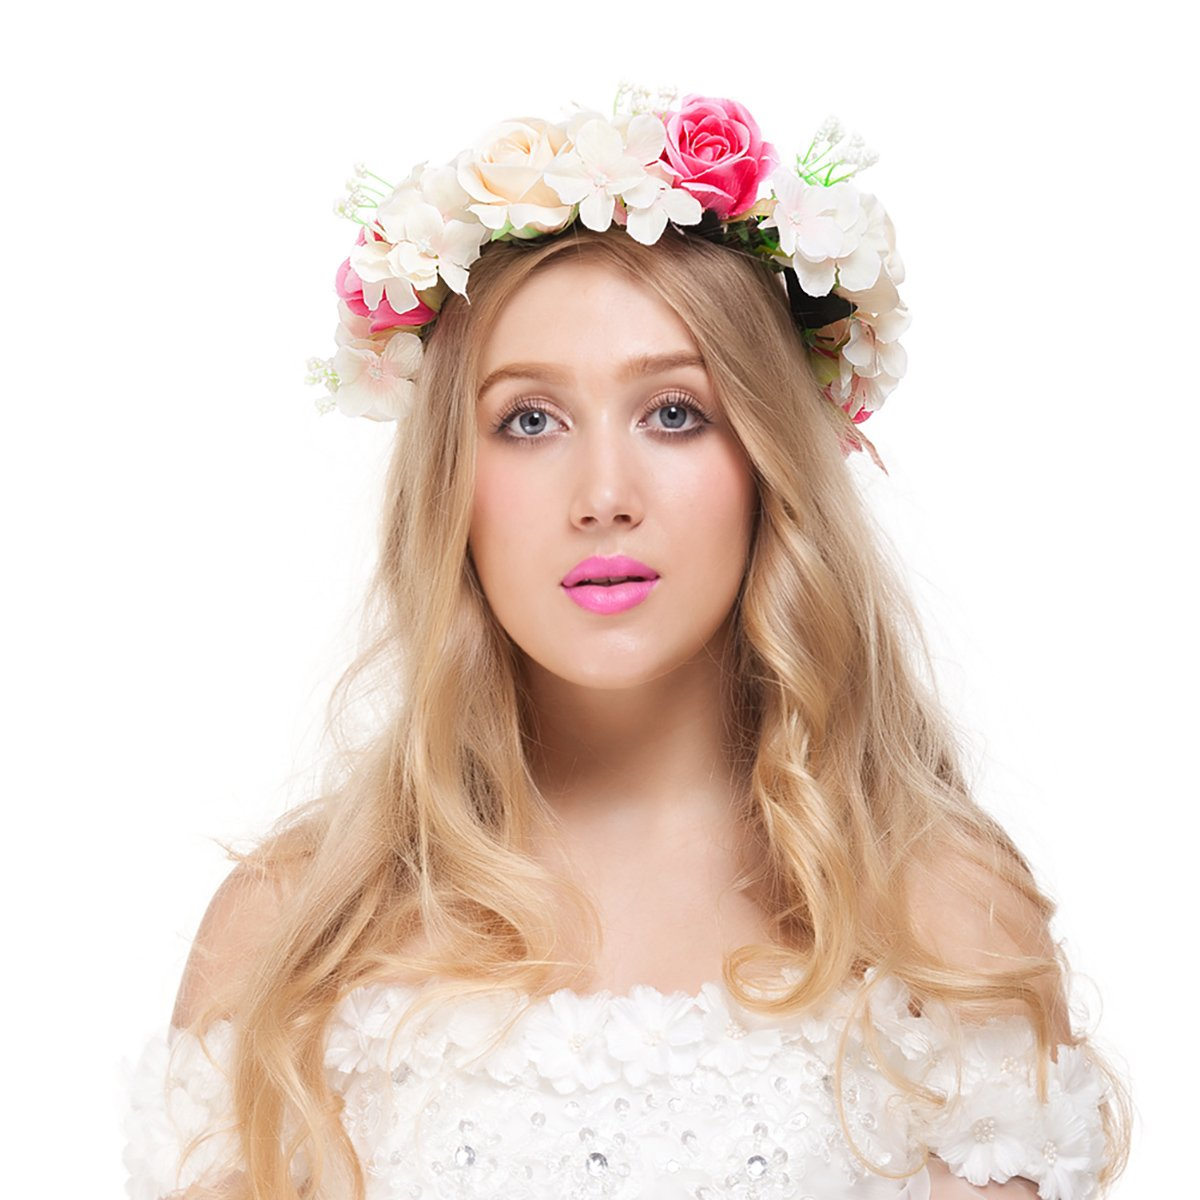 Amazon bridal flower crown floral crown wedding wreath boho valdler exquisite flower crown flower headband for spring tourism wedding festivals party izmirmasajfo Choice Image